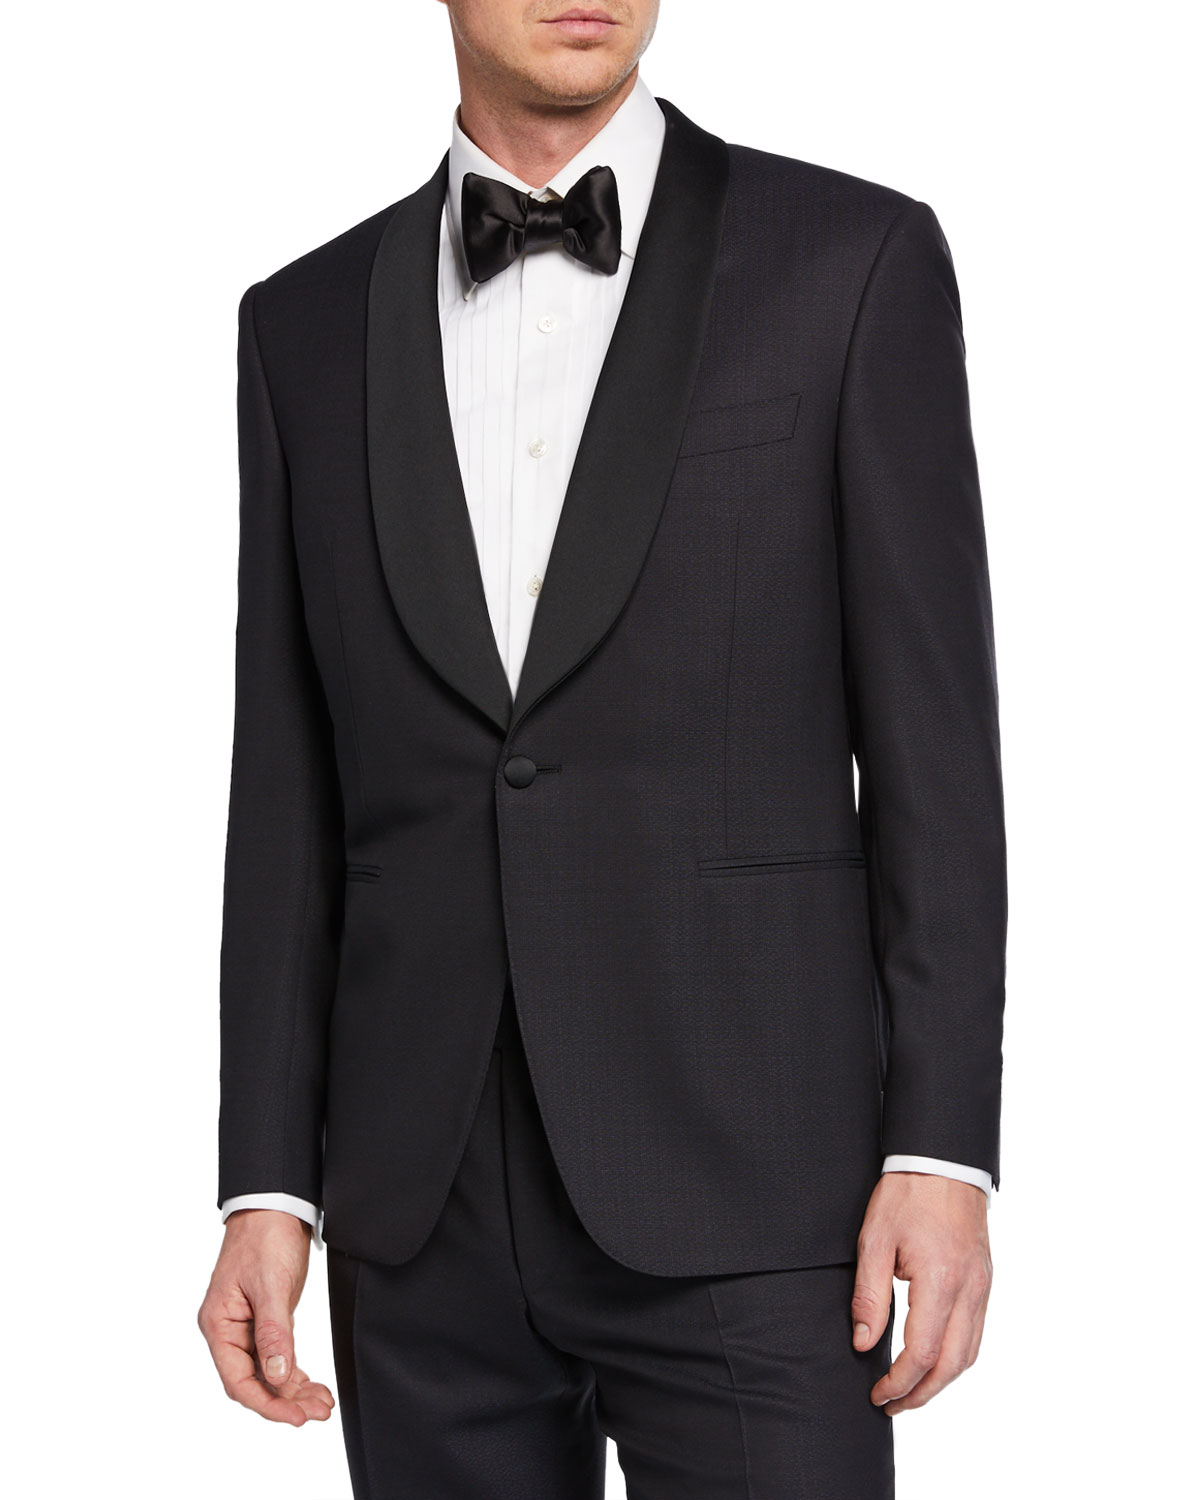 Canali Men's Two-Piece Tuxedo with Shawl Collar